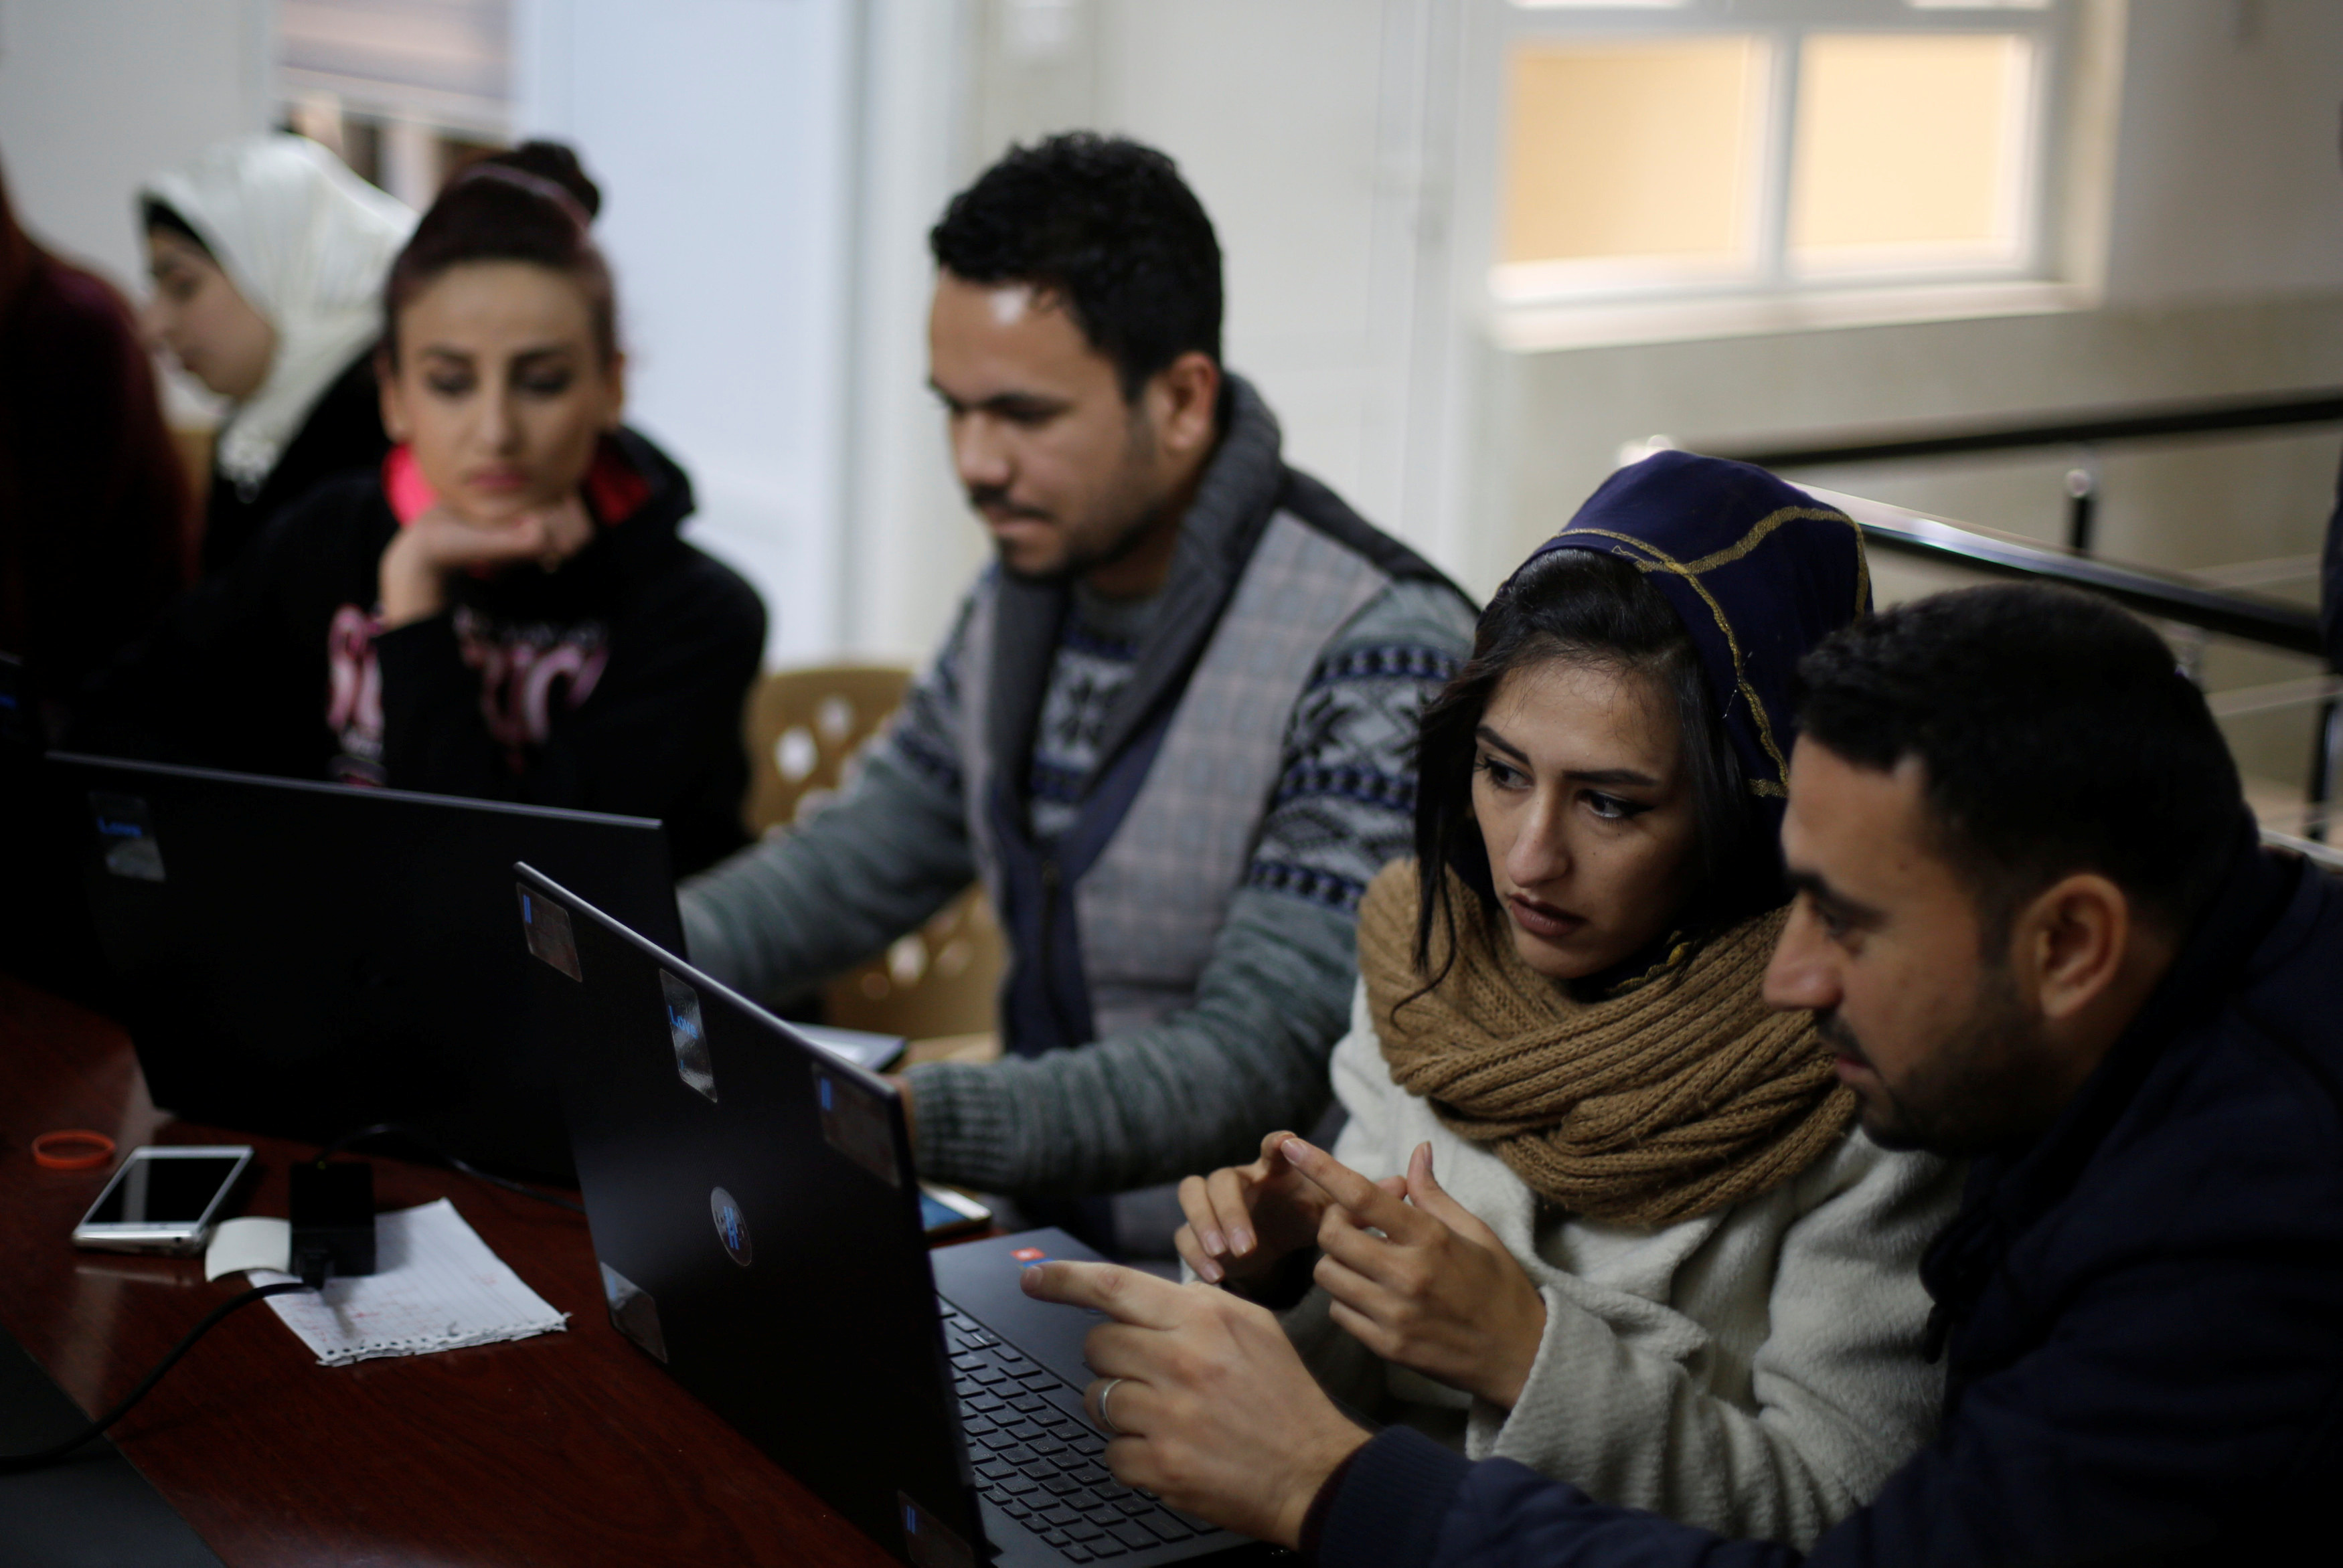 Syrian refugees and displaced Iraqis attend their class to learn basic and advanced coding skills at the Re:Coded boot camp, in Erbil, Iraq February 1, 2017. Picture taken February 1, 2017. REUTERS/Muhammad Hamed     TPX IMAGES OF THE DAY - RC125482BD10